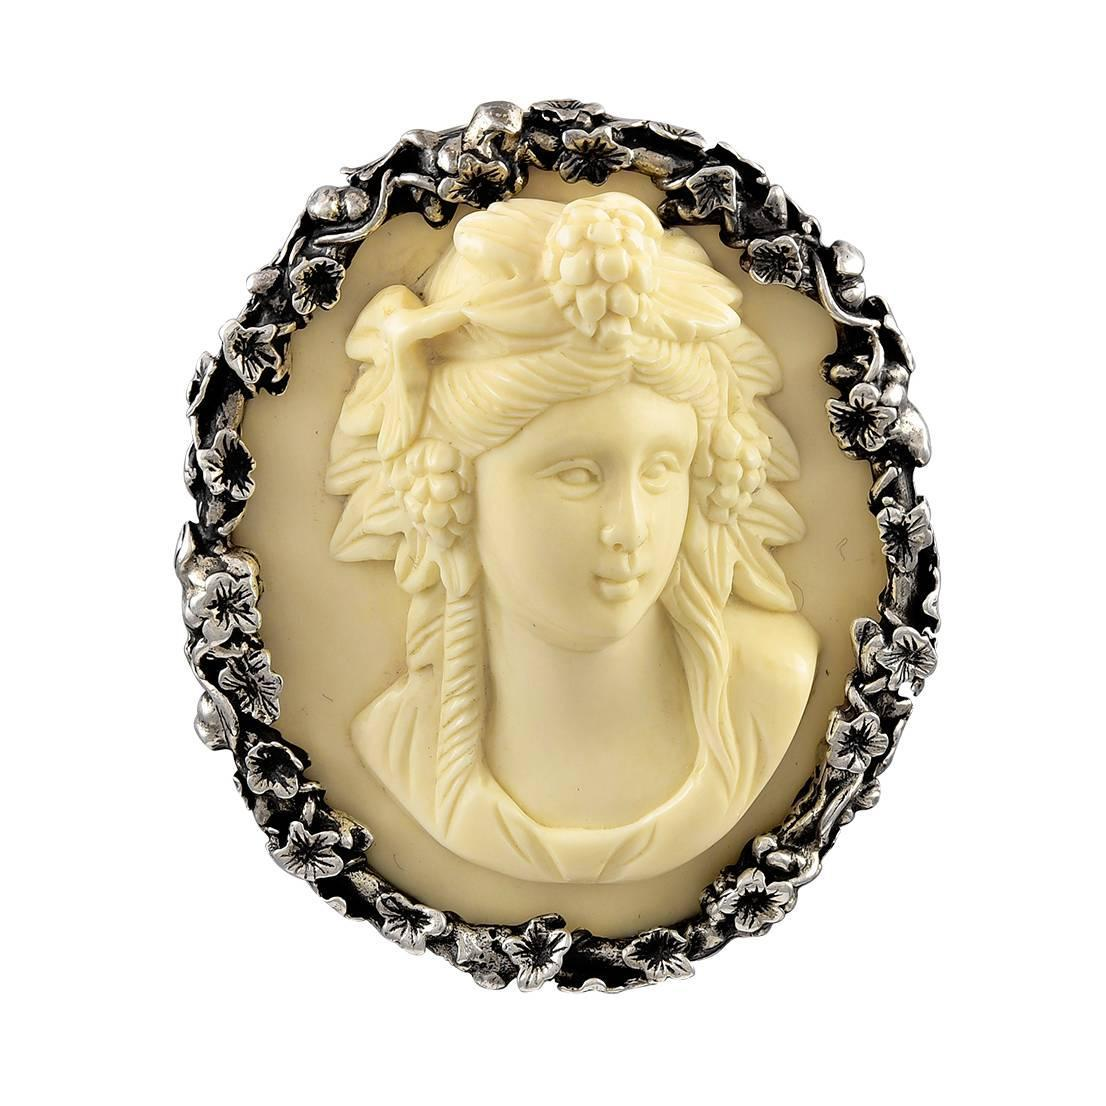 Stephen Dweck Bone Sterling Silver Cameo At 1stdibs